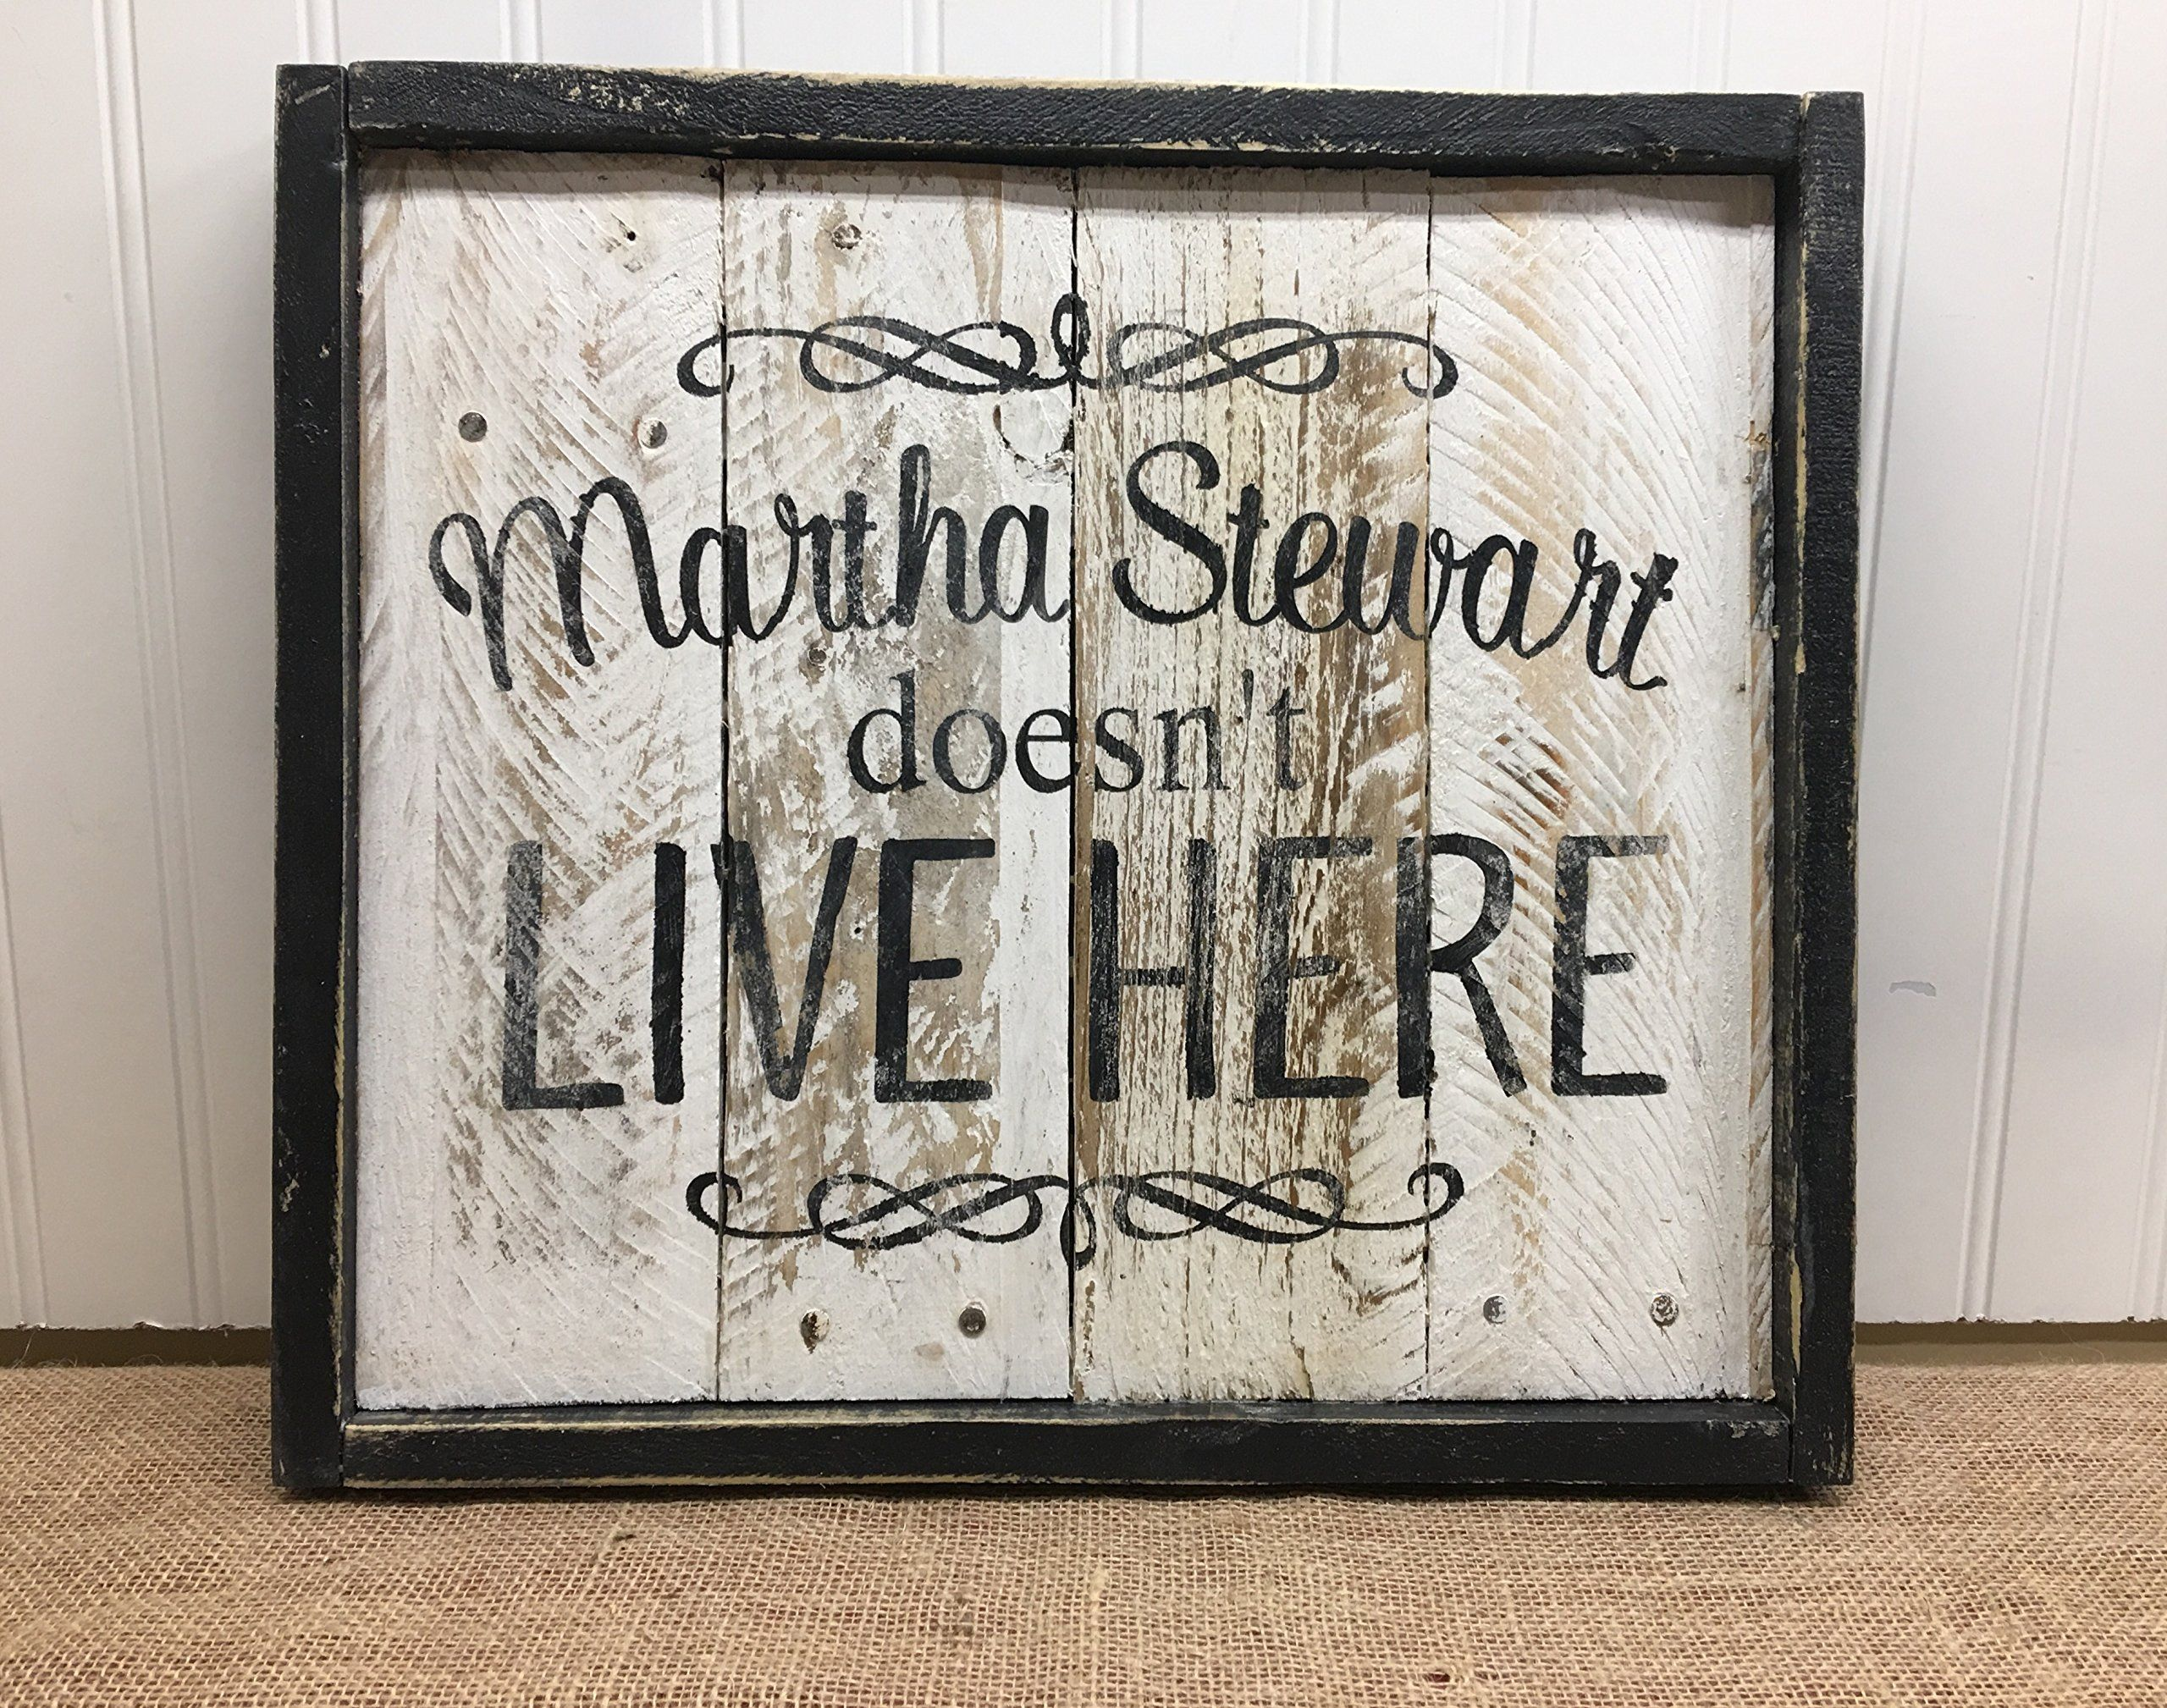 Martha stewart quote reclaimed wood pallet sign home decor x